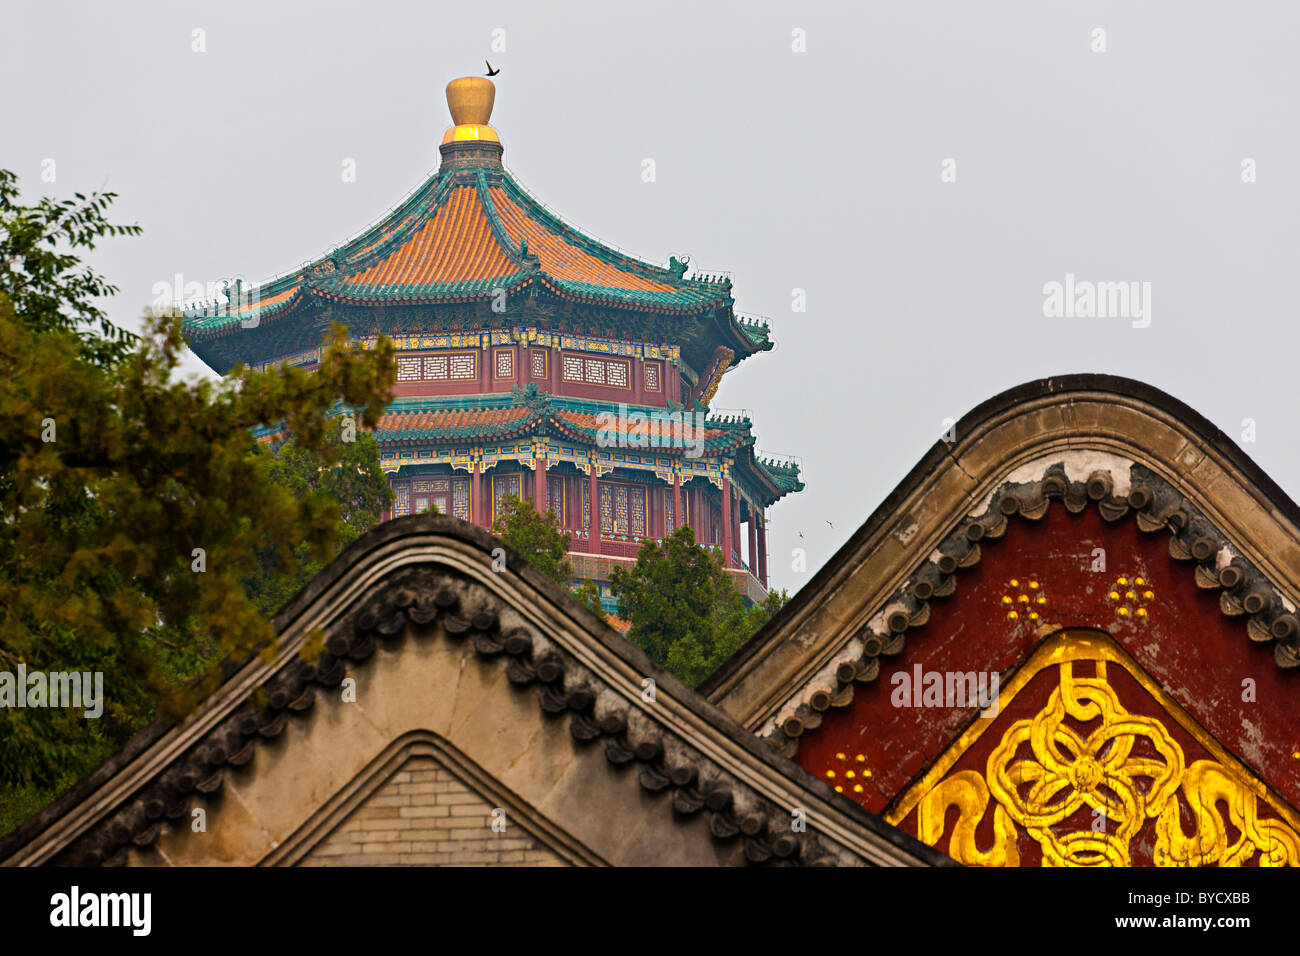 Roof of the New Summer Palace, Yiheyuan, Beijing, China. JMH4811 - Stock Image